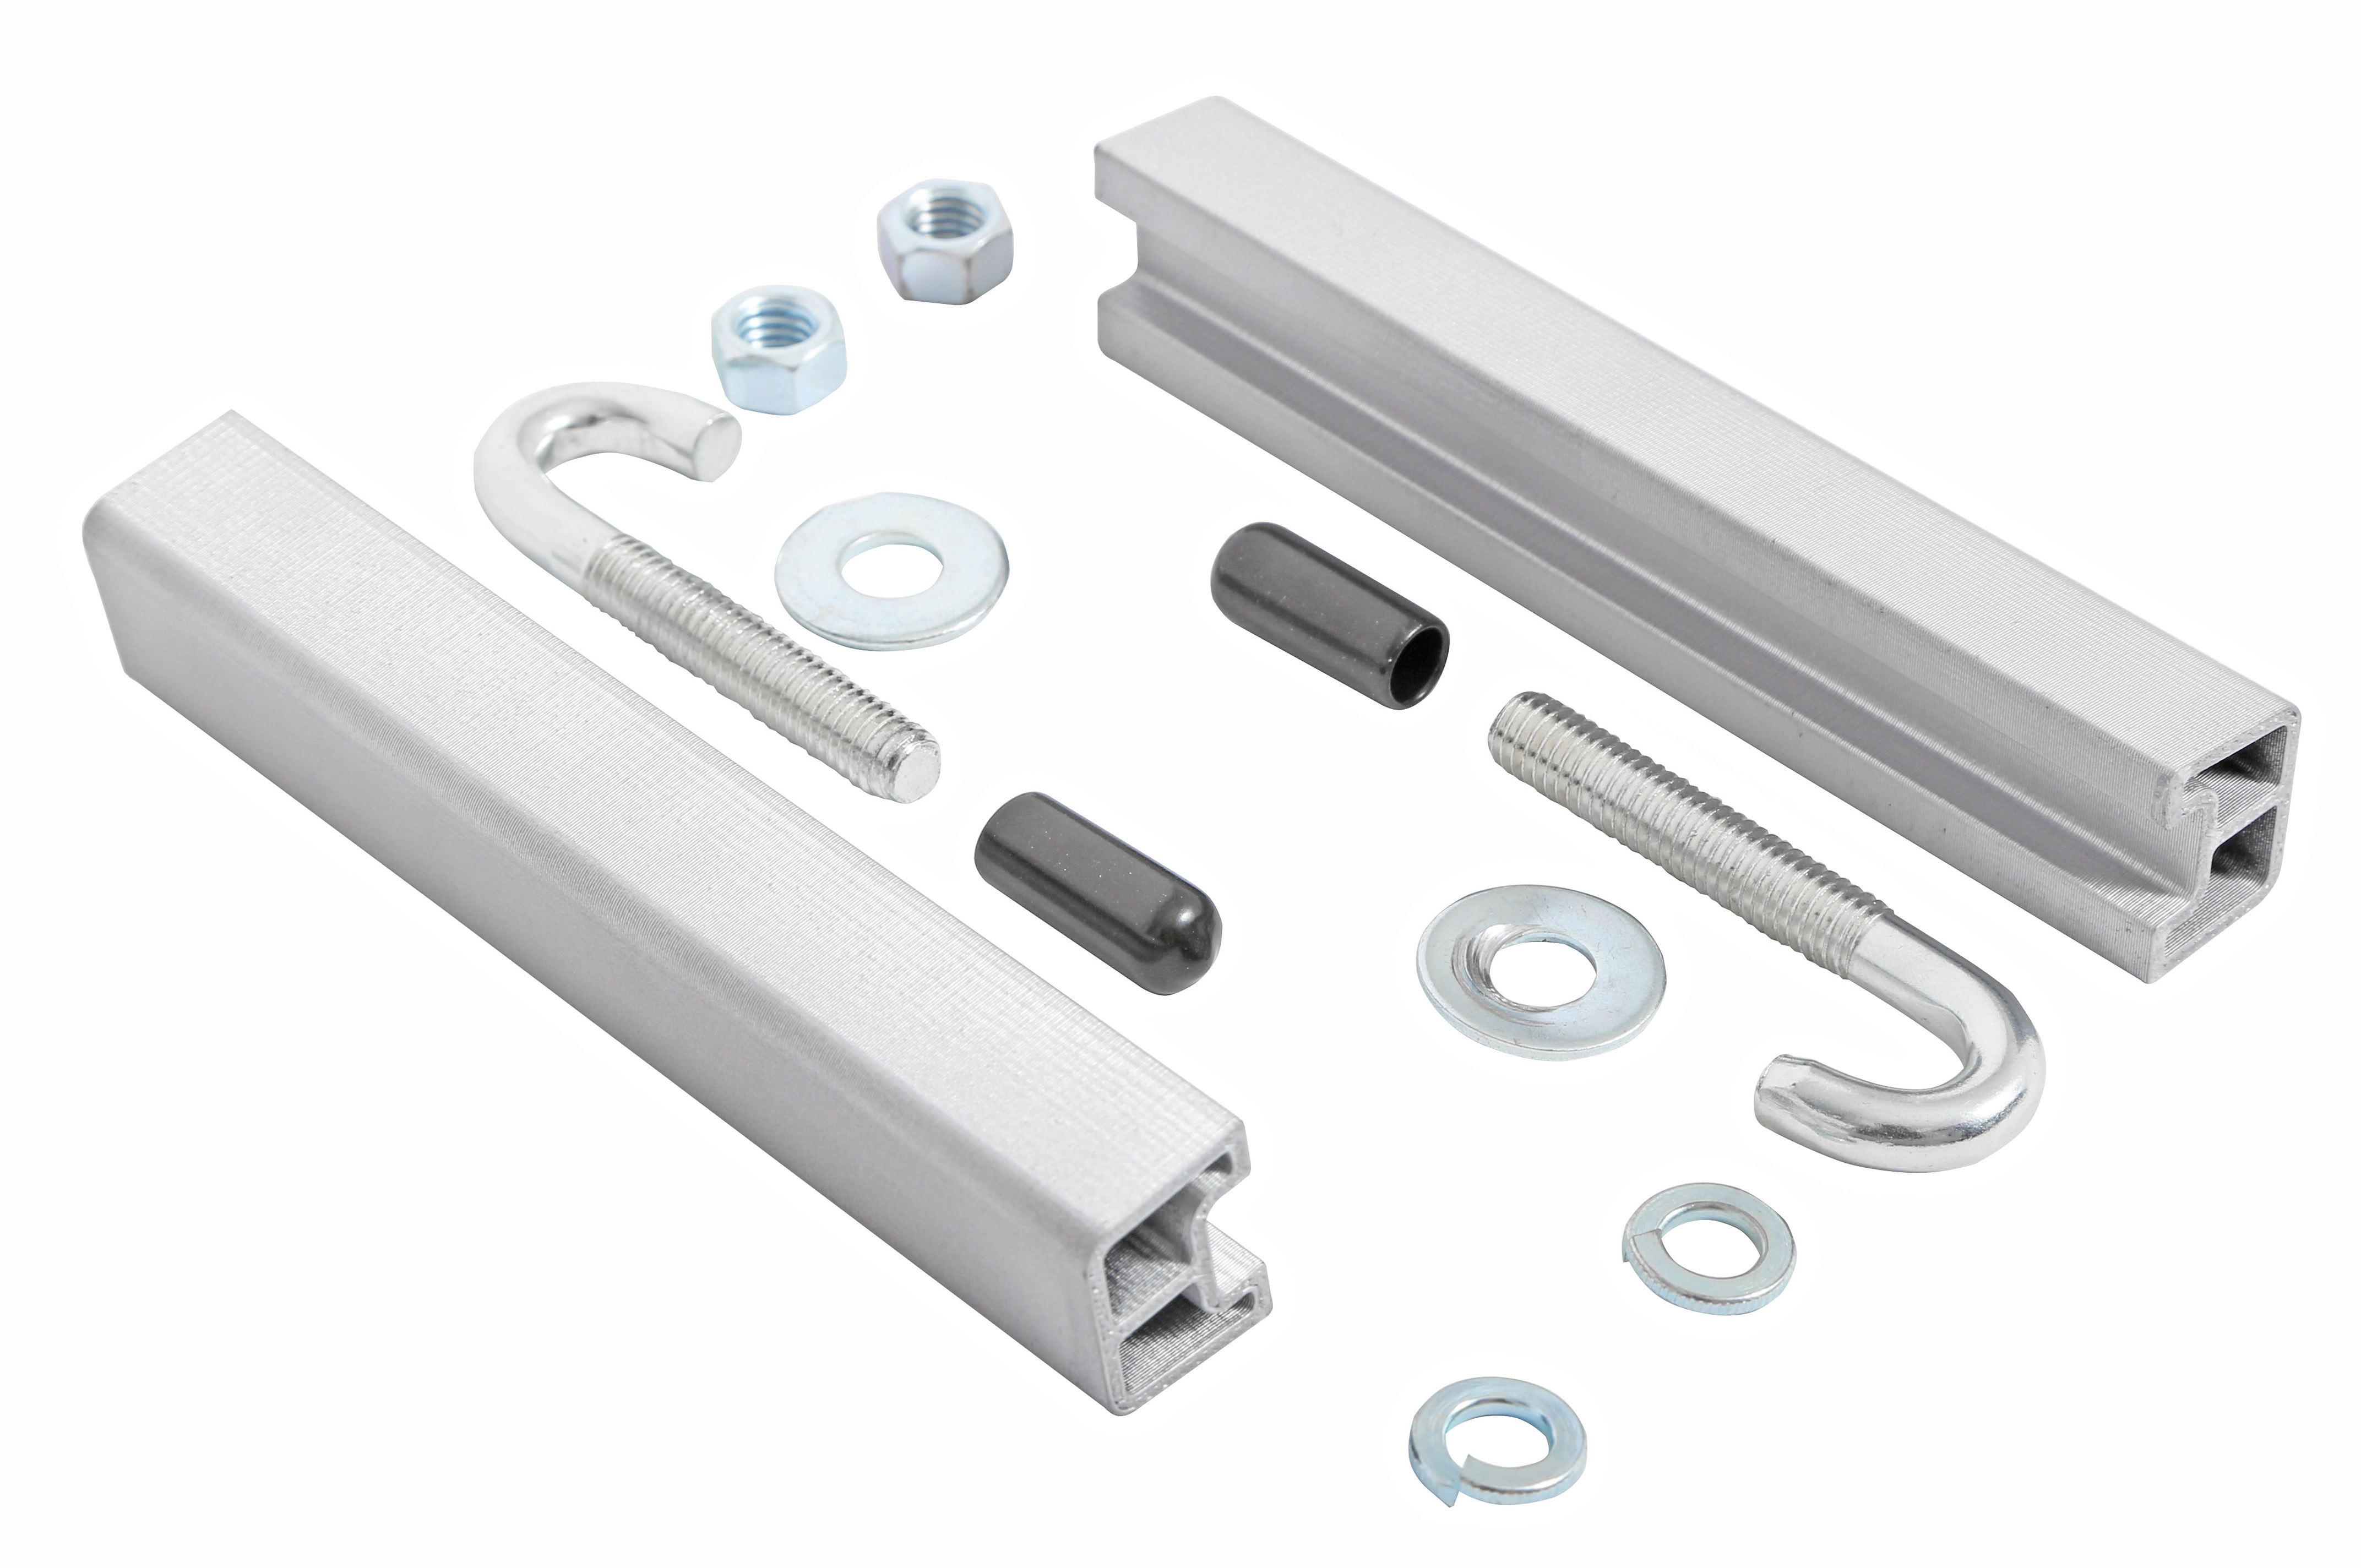 DZ97910 Dee Zee Tool Box Mounting Kit Includes Pair of Aluminum